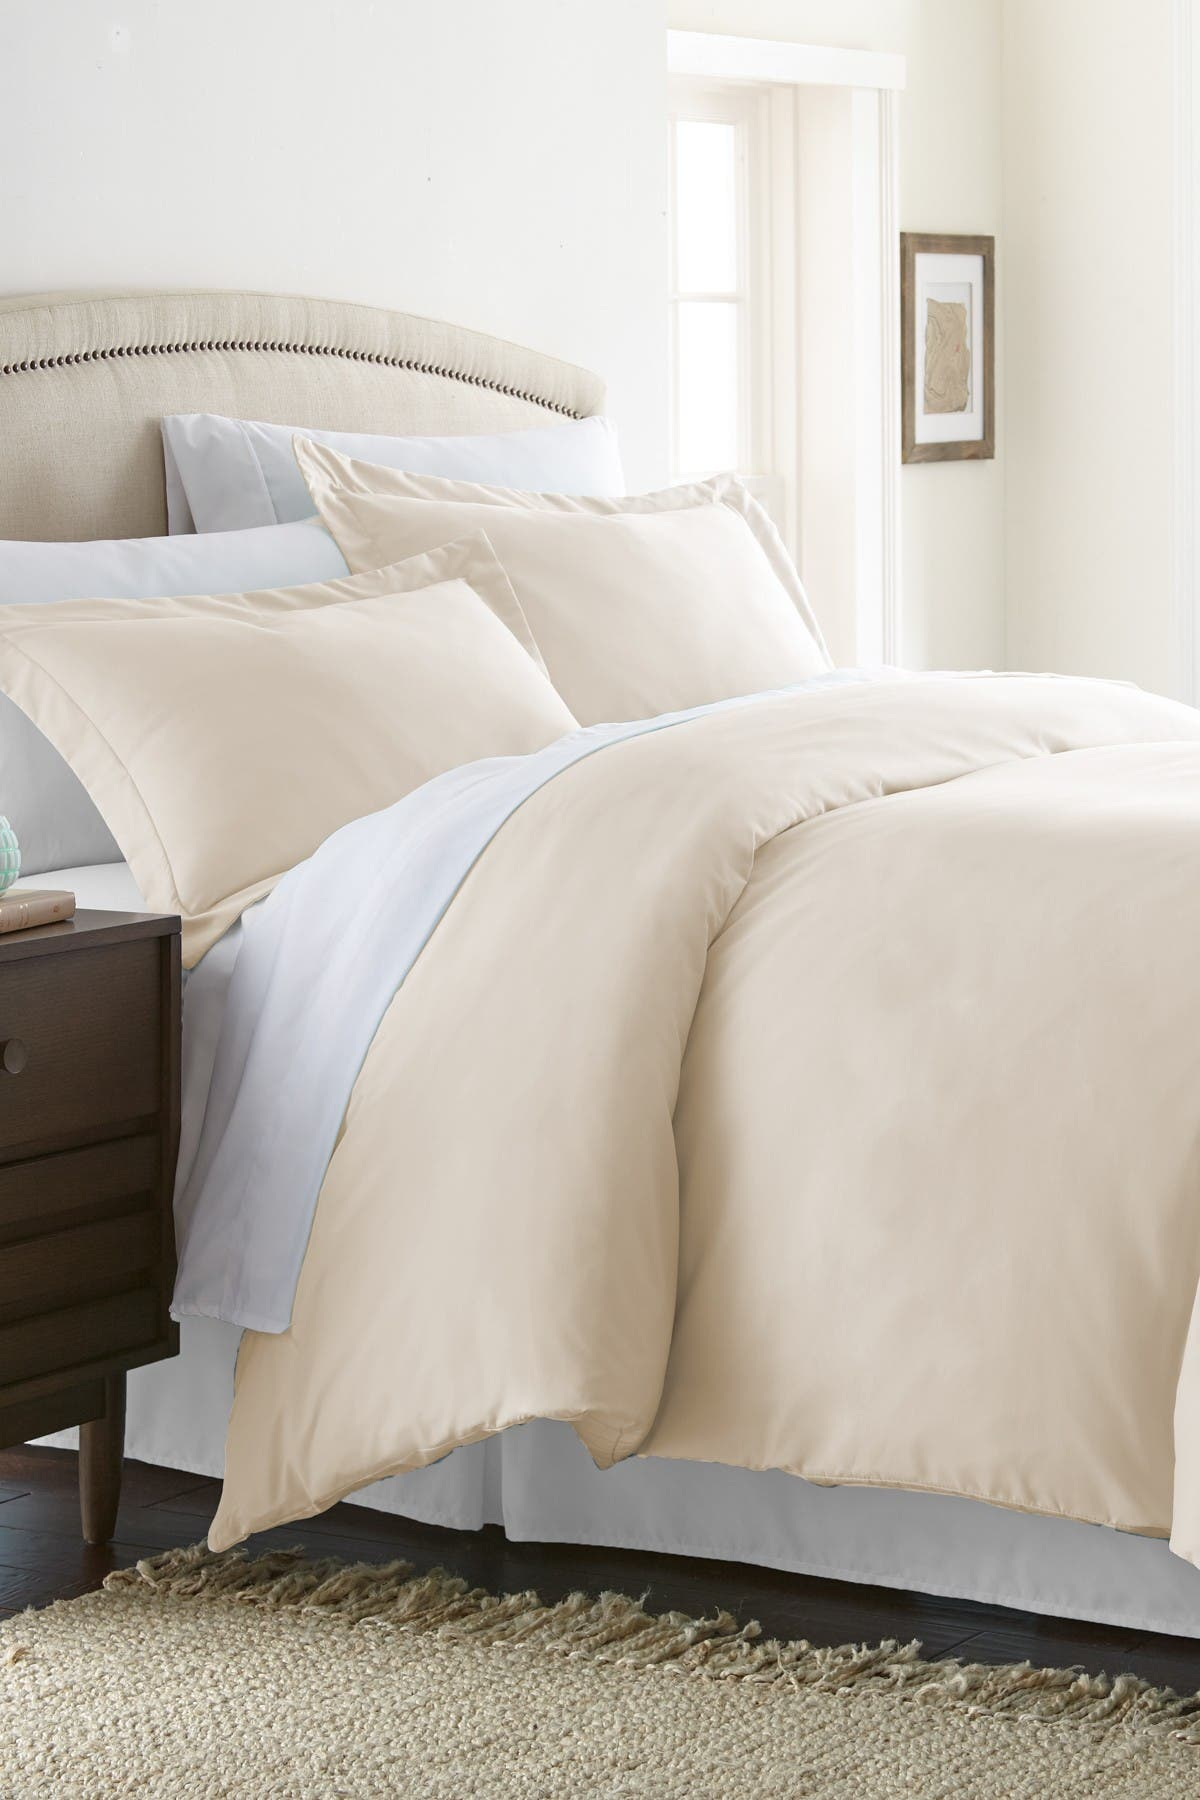 Ienjoy Home Home Collection Premium Ultra Soft 3-piece Full/queen Duvet Cover Set In Ivory